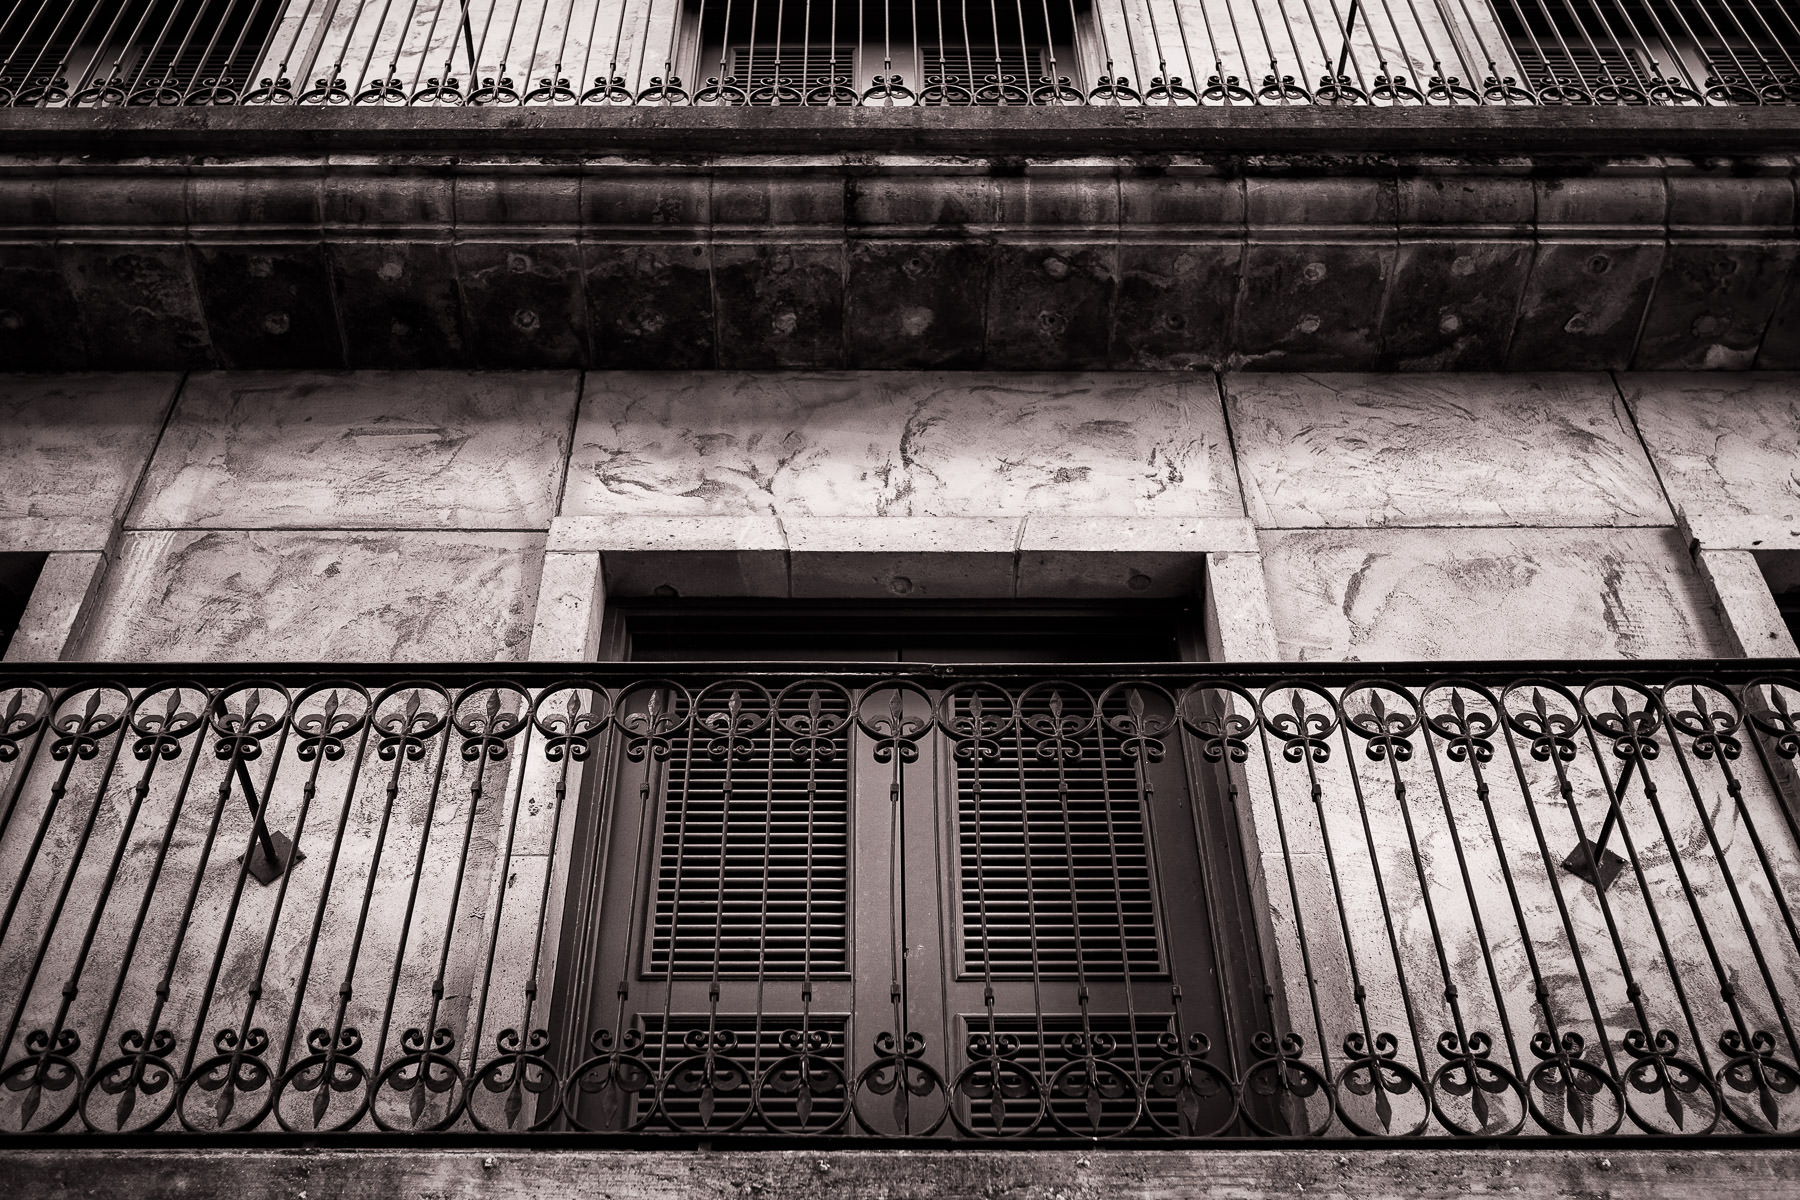 An ornate iron rail accentuates the Spanish-style architecture of an office building along the Mandalay Canal in Las Colinas, Irving, Texas.